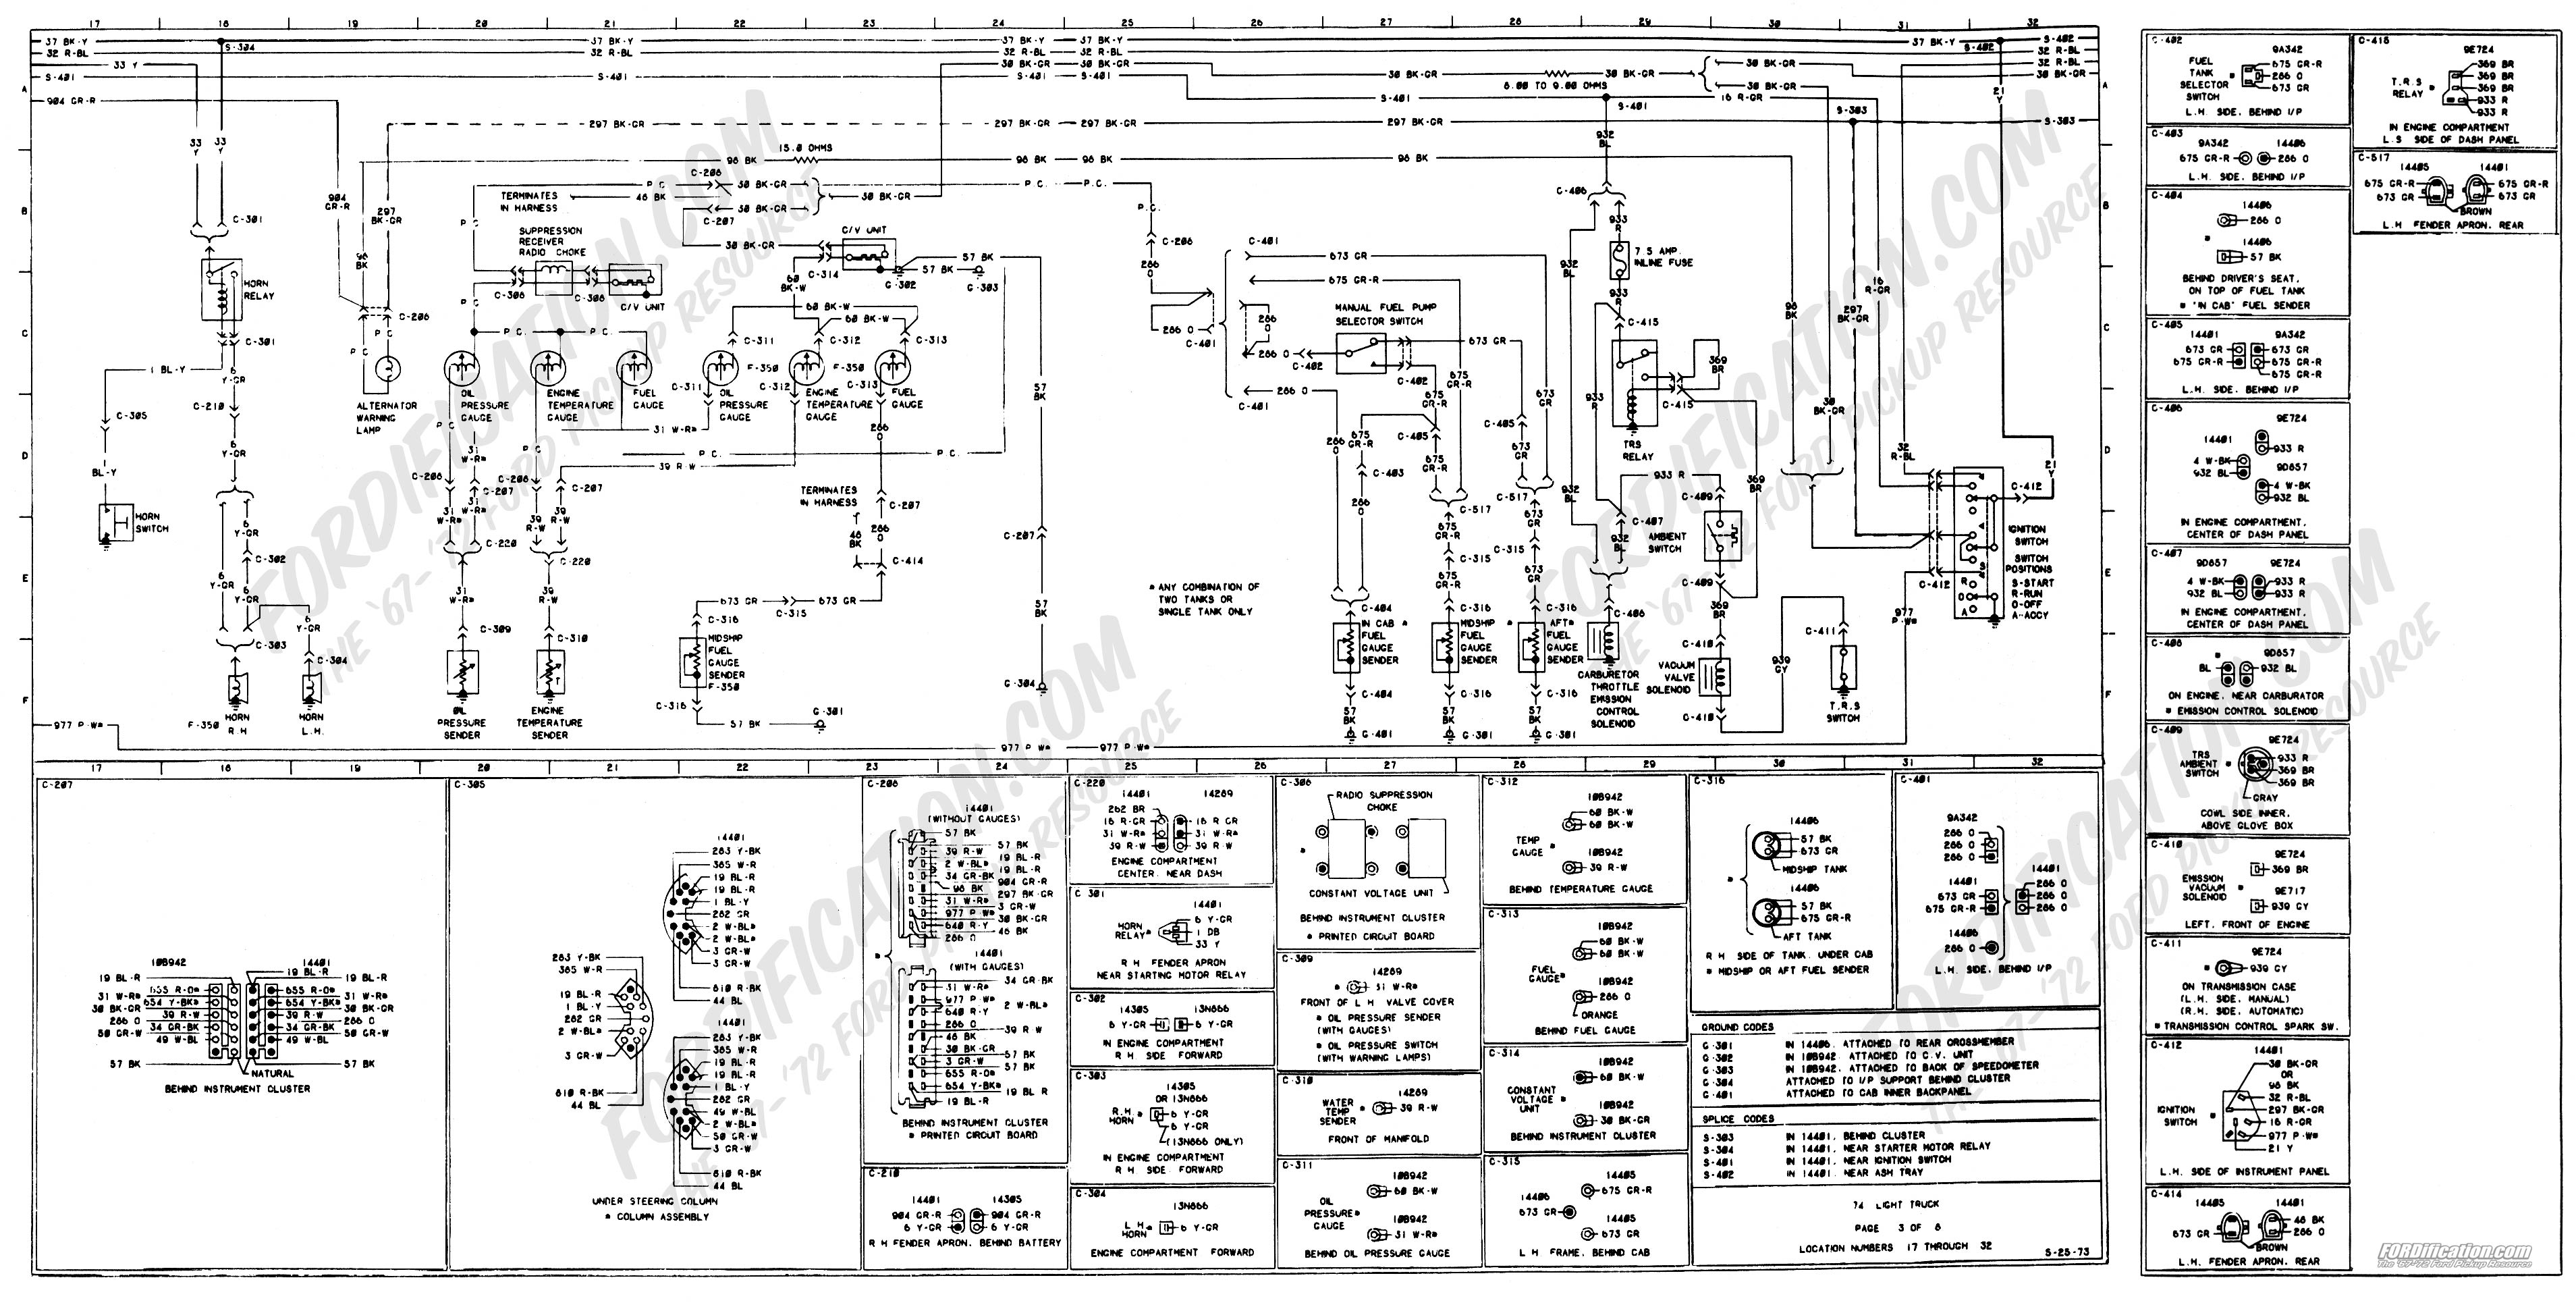 1973 1979 ford truck wiring diagrams & schematics fordification net Ford Transit Wiring-Diagram 96-1 2010 Ford Transit Audio Wiring Diagrams #4